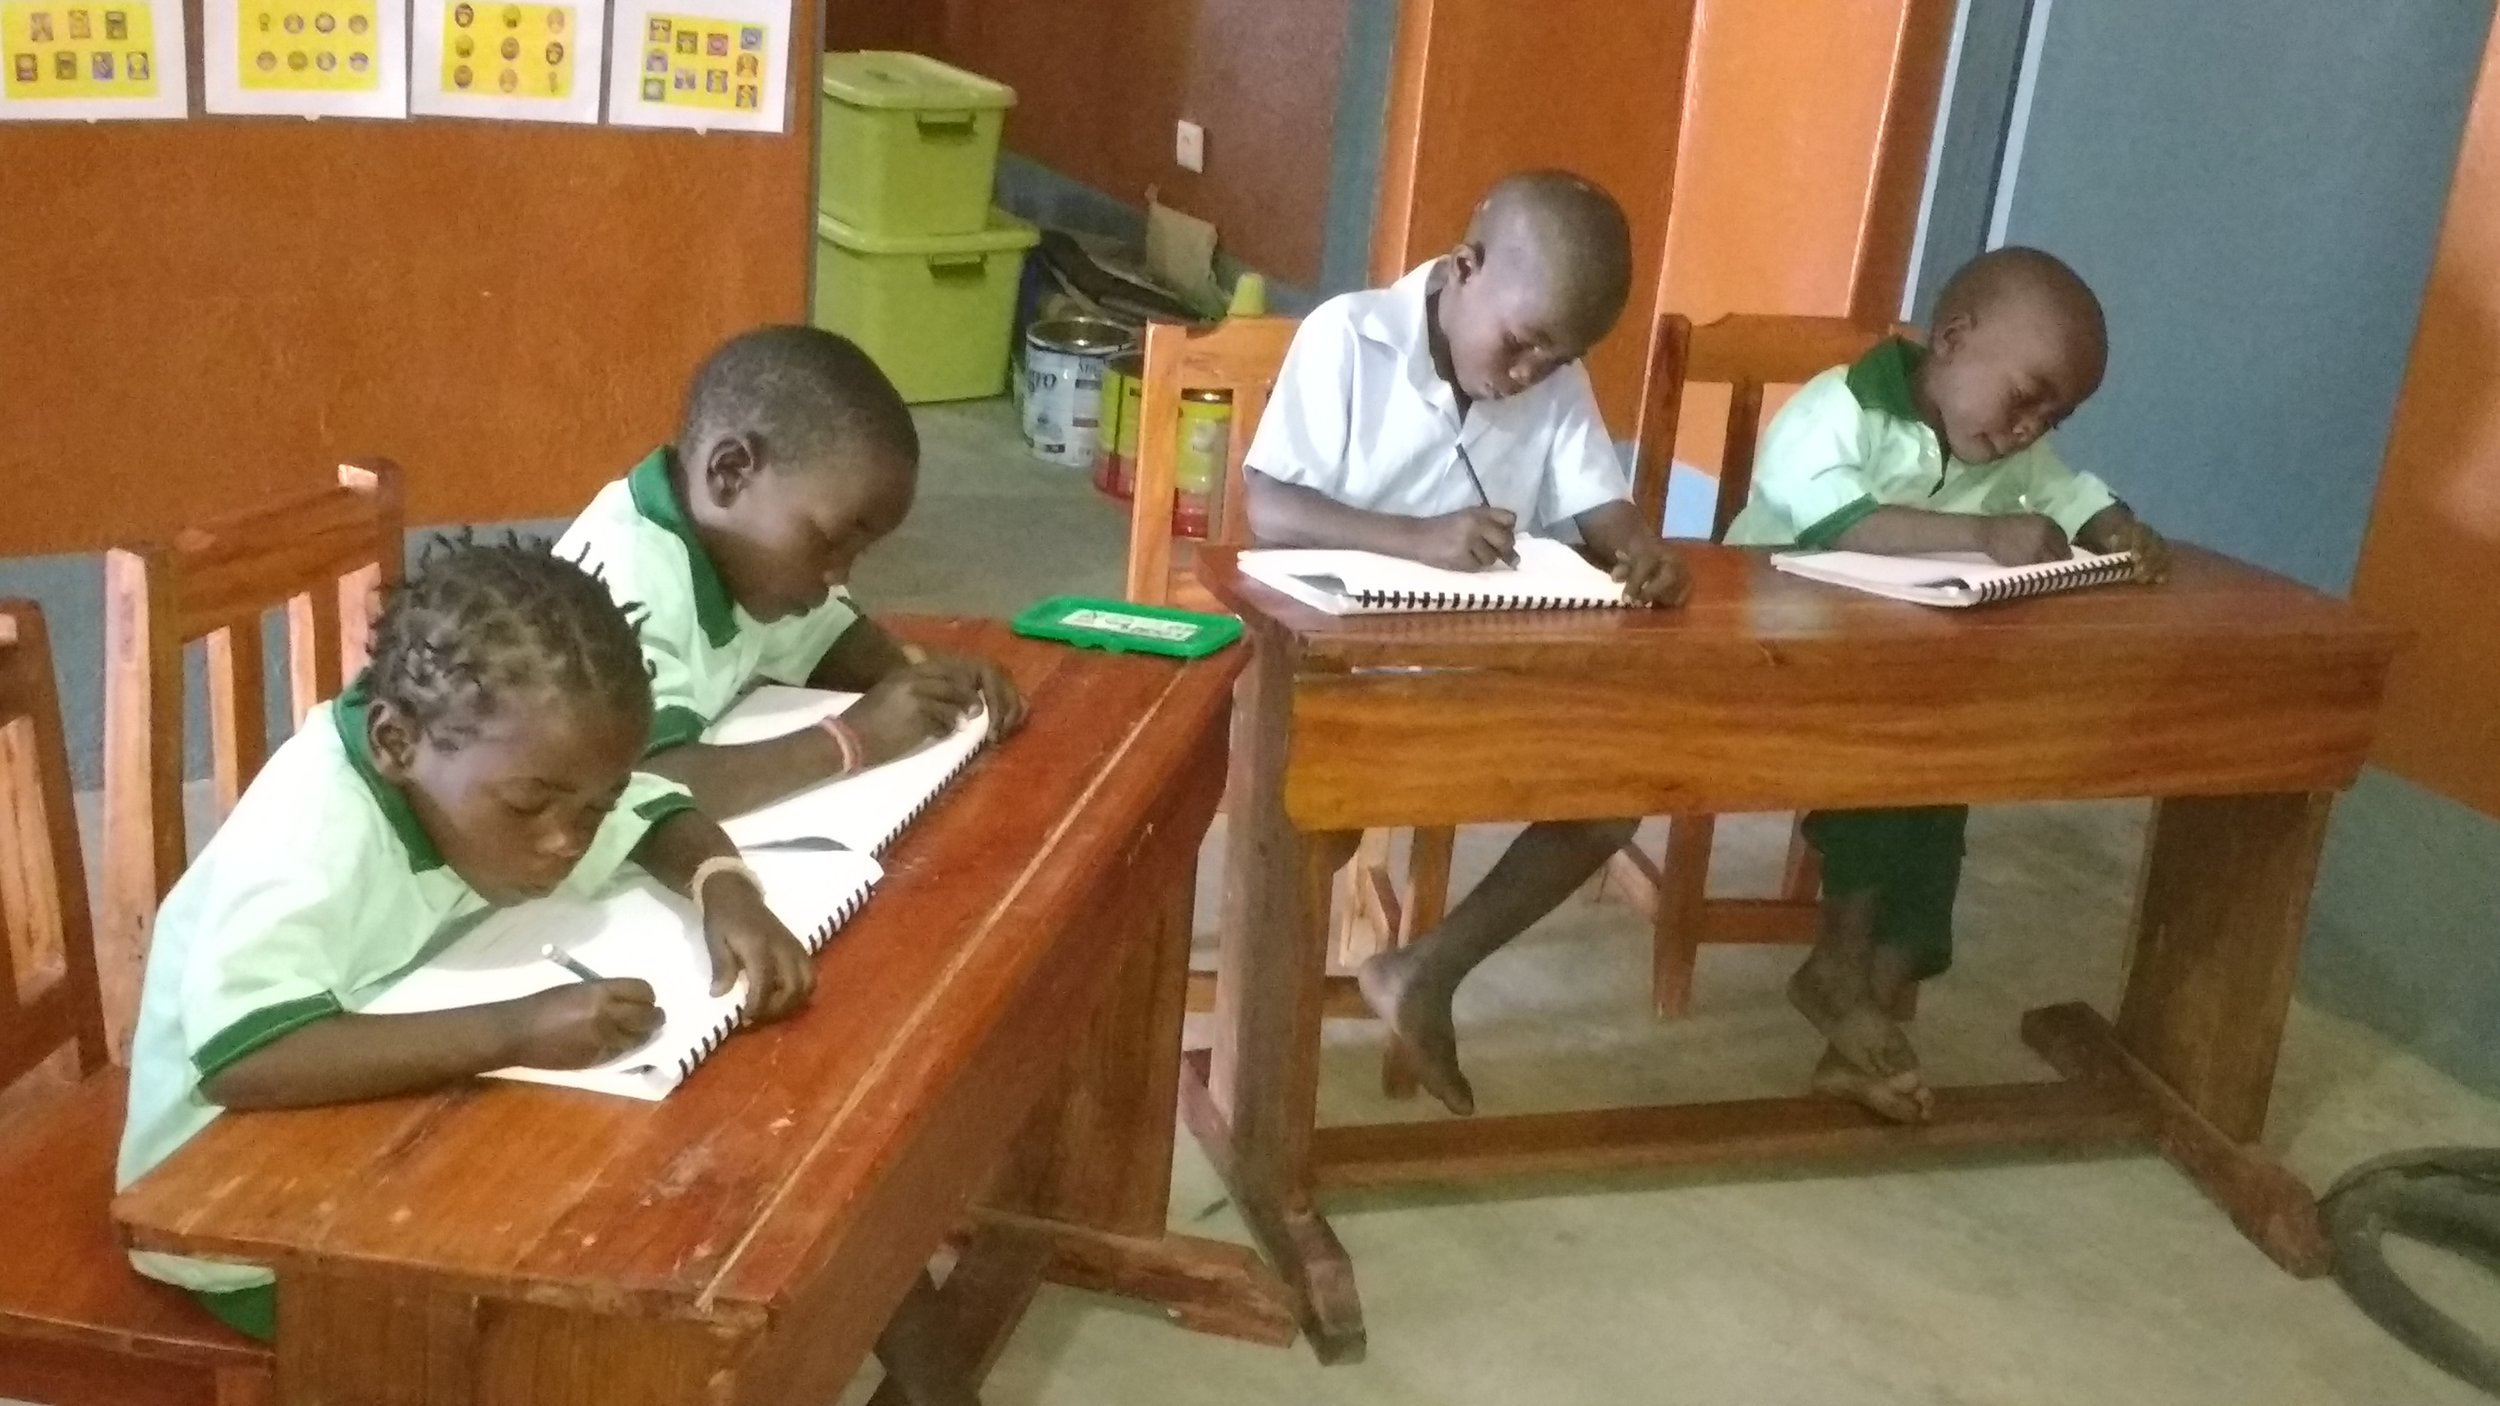 PRE/PRIMARY SCHOOL - Our school has 2 preschool classes and grades 1-3 of primary school. We provide a quality Christian education for kids from neighbouring villages who otherwise would have limited access to education.$5 a month can help us buy snacks for the children$125 a month can help us contribute towards teachers salaries$100 a month can help pay for a guardAnnual goal: $3600